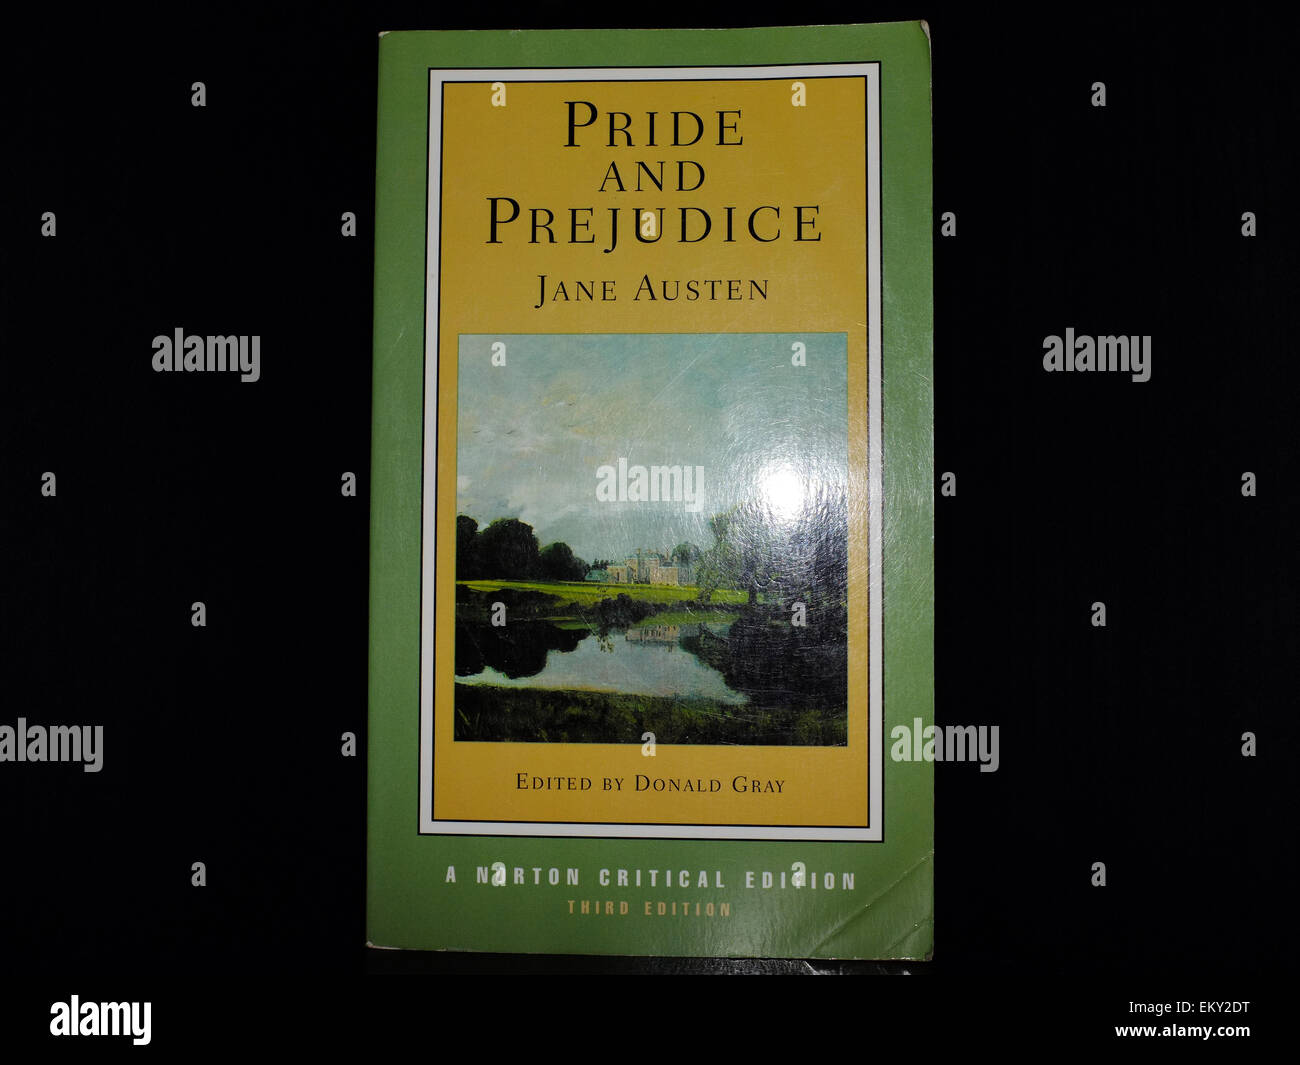 The front cover of Pride and Prejudice by Jane Austen photographed against a black background. - Stock Image